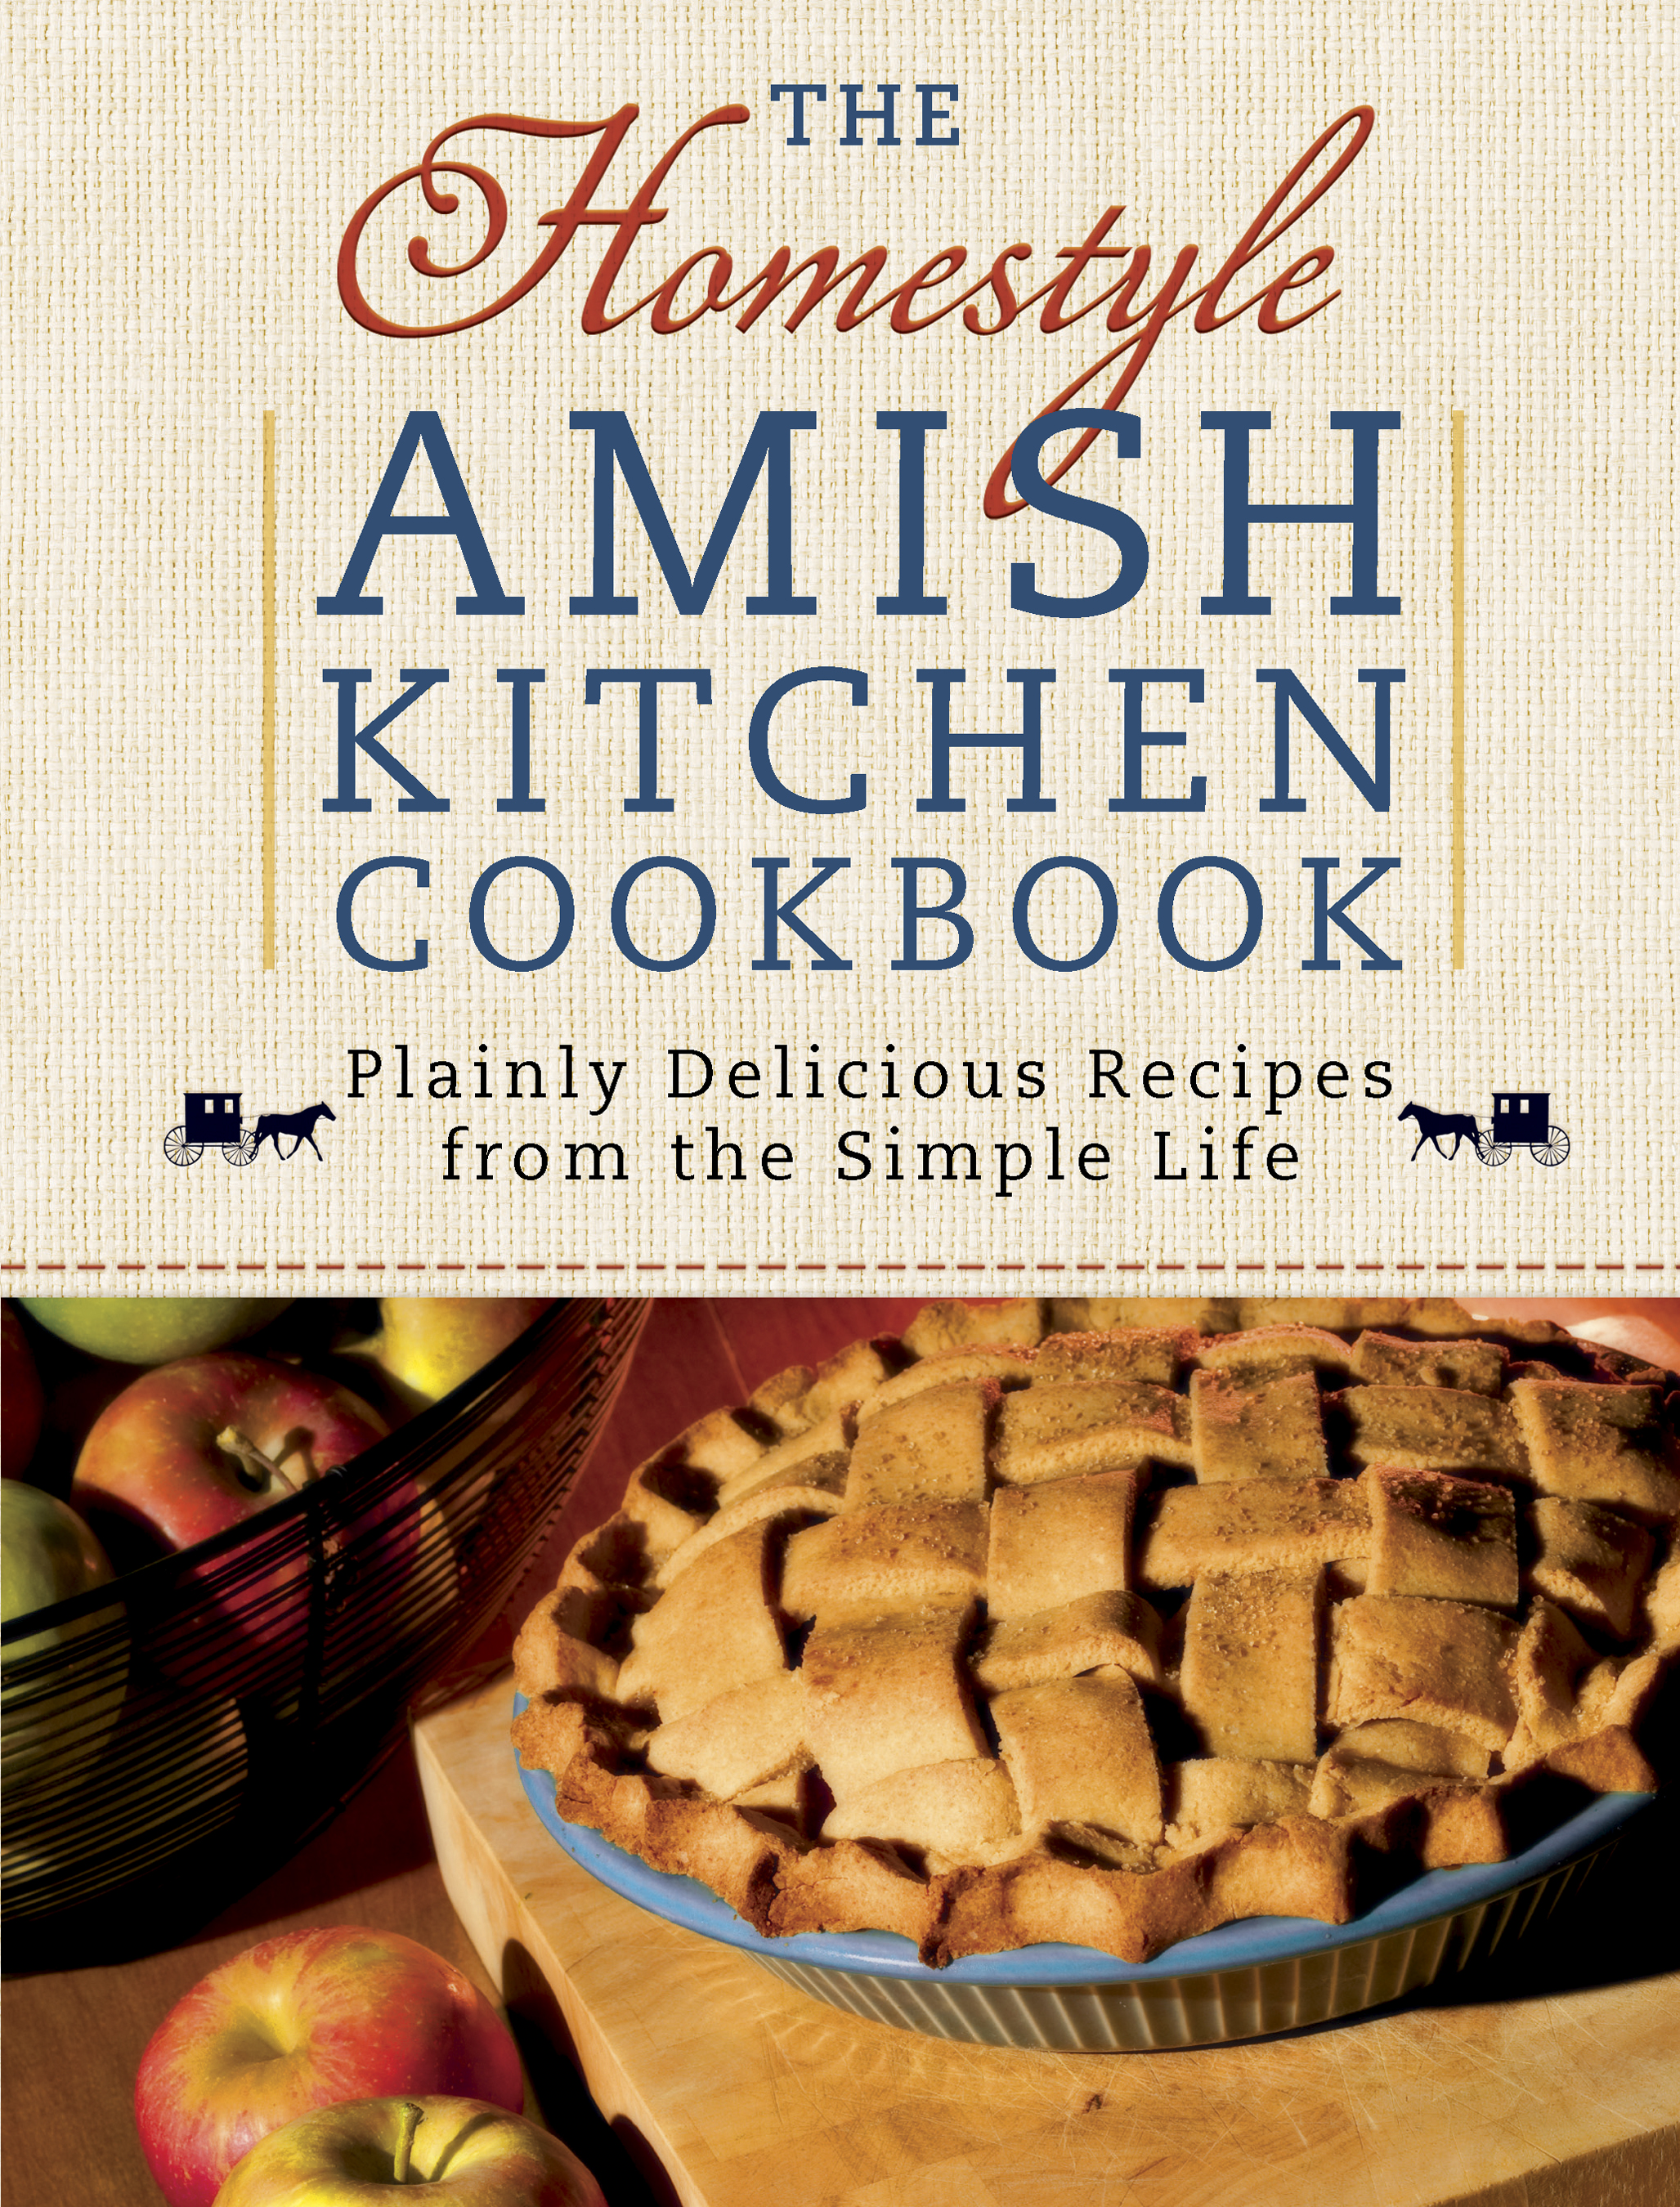 The Homestyle Amish Kitchen Cookbook Plainly Delicious Recipes from the Simple Life